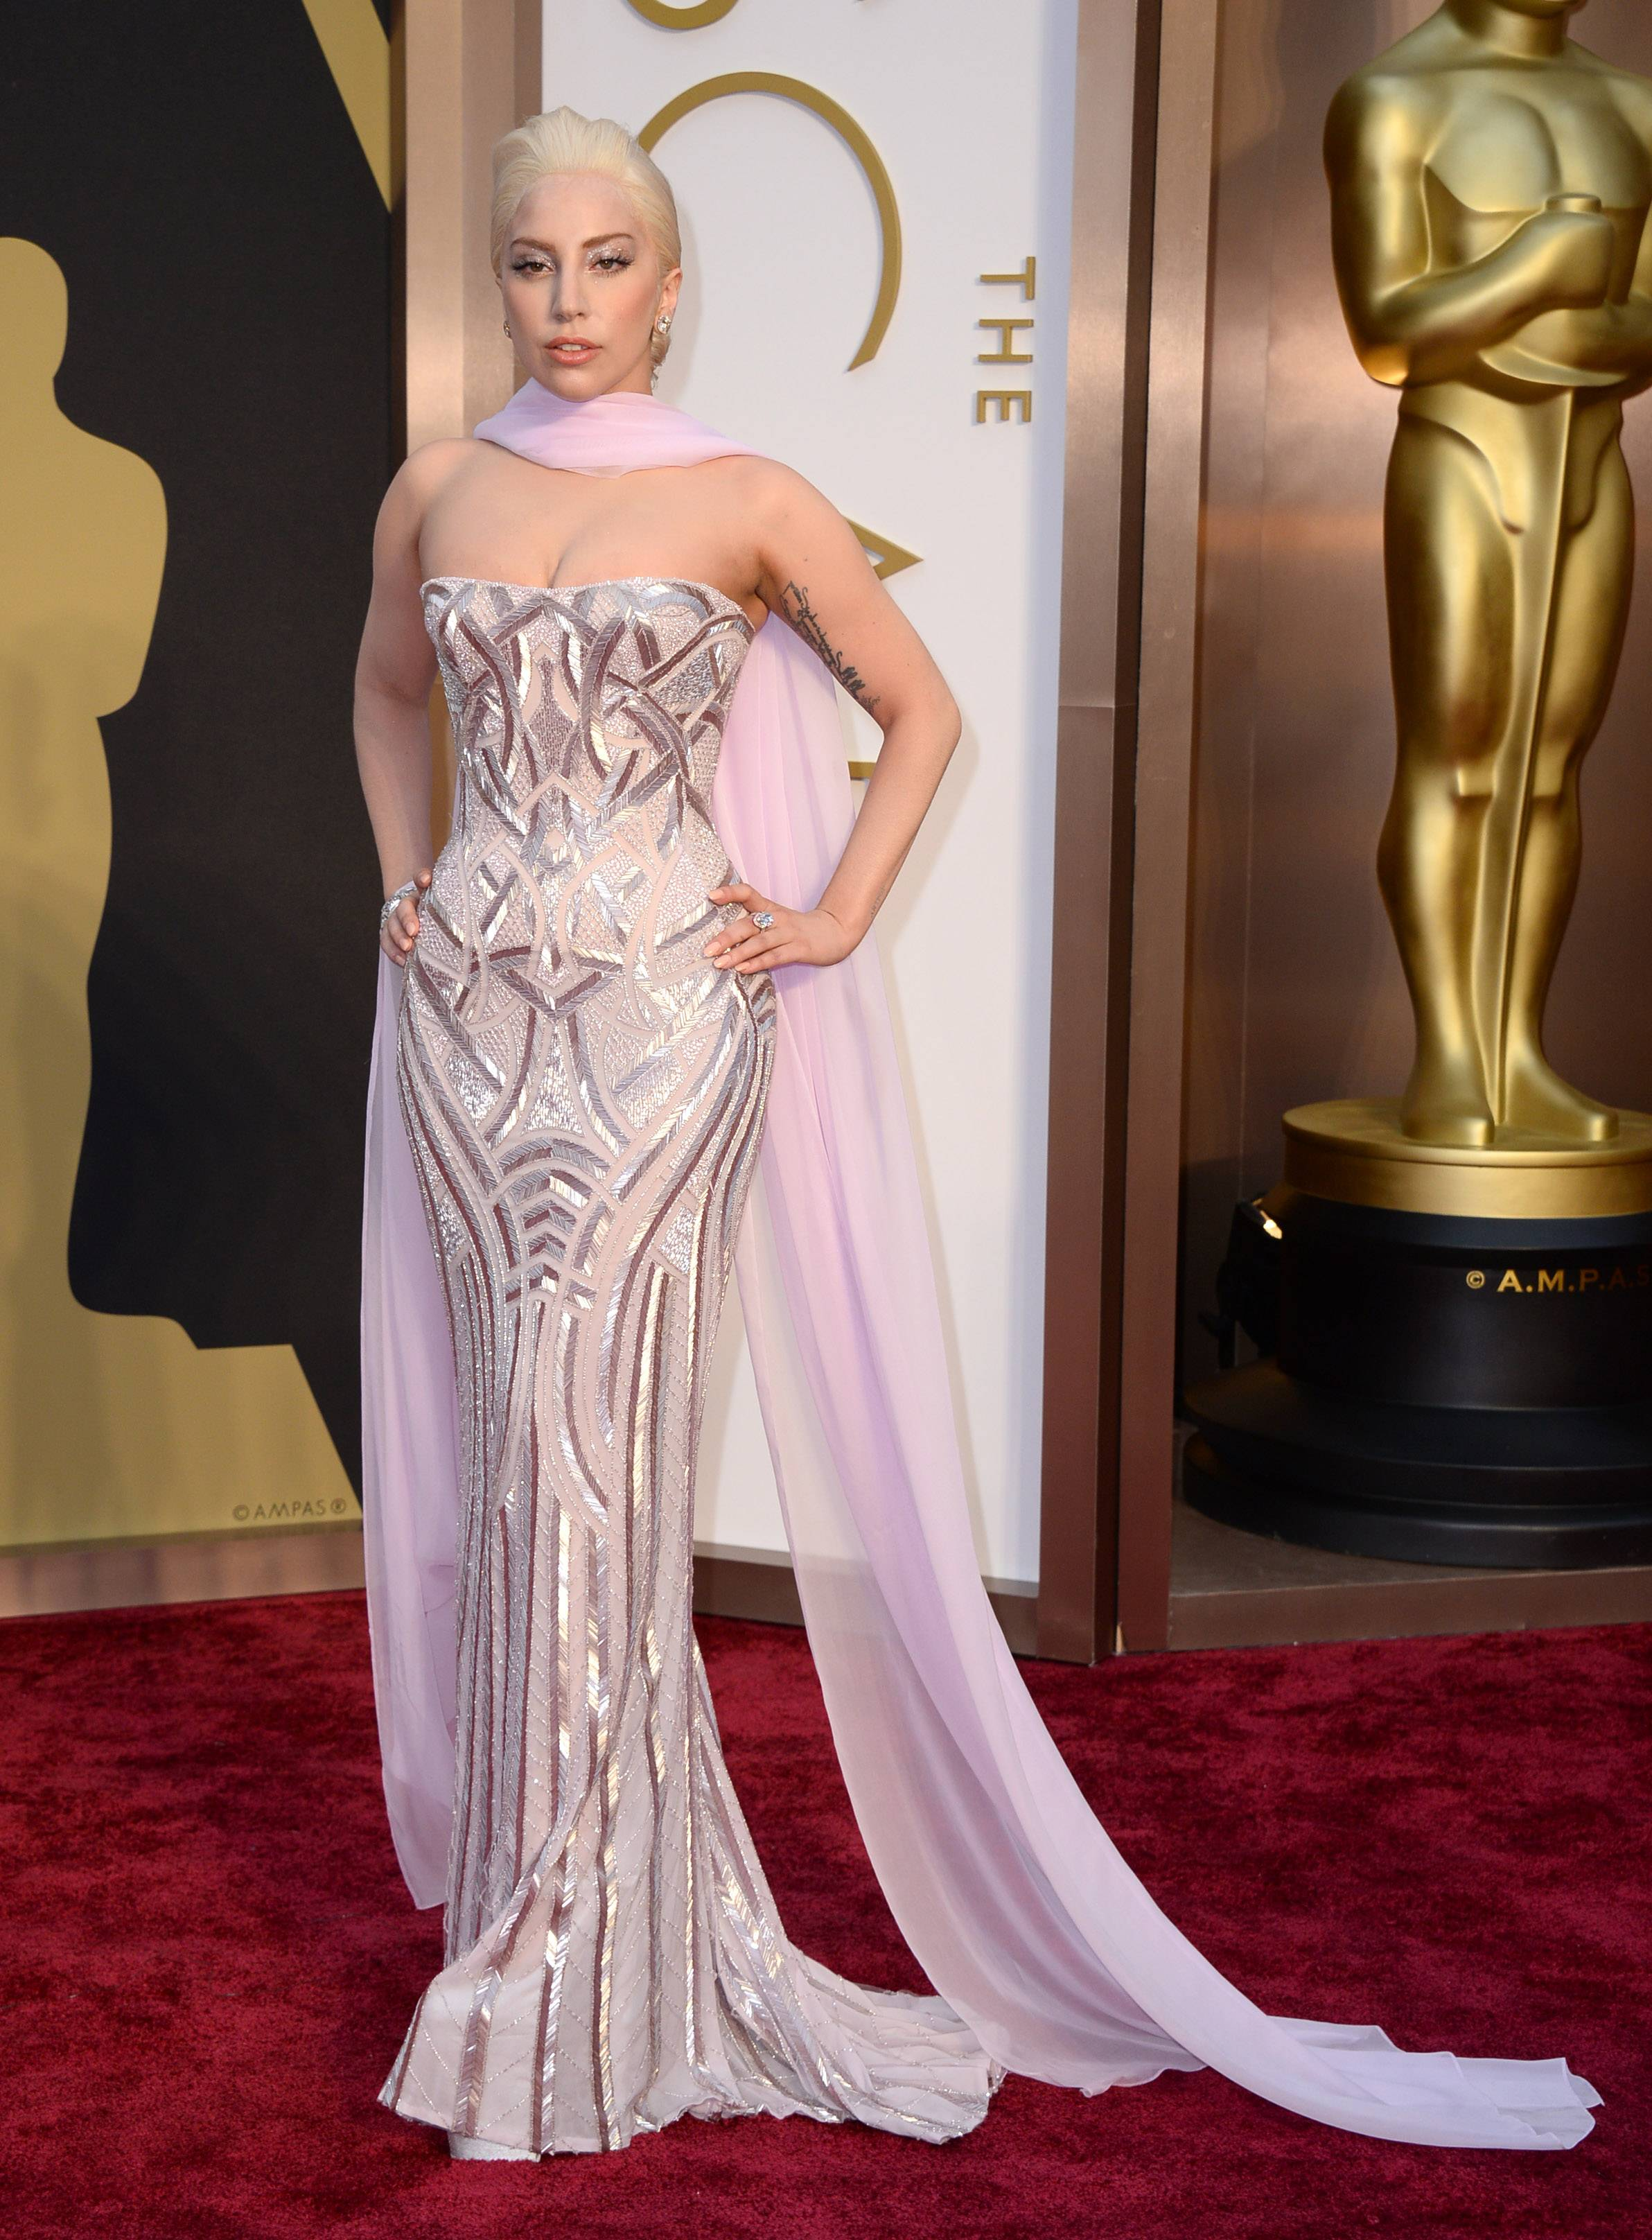 Lady Gaga looks rather sedate for ya know, Lady Gaga, on the Oscars red carpet.